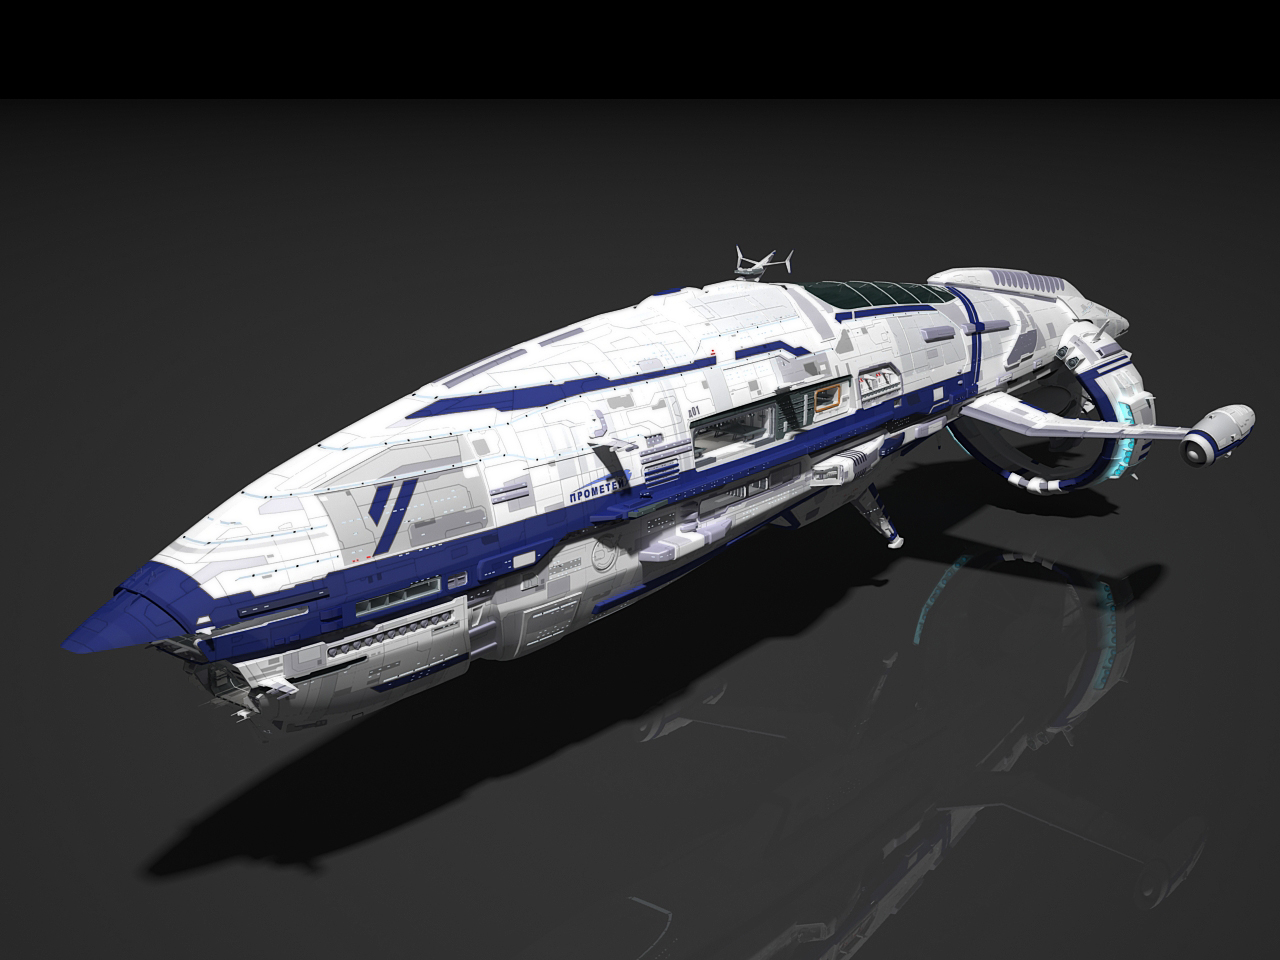 Space ship ships and spaces on pinterest for Passengers spaceship